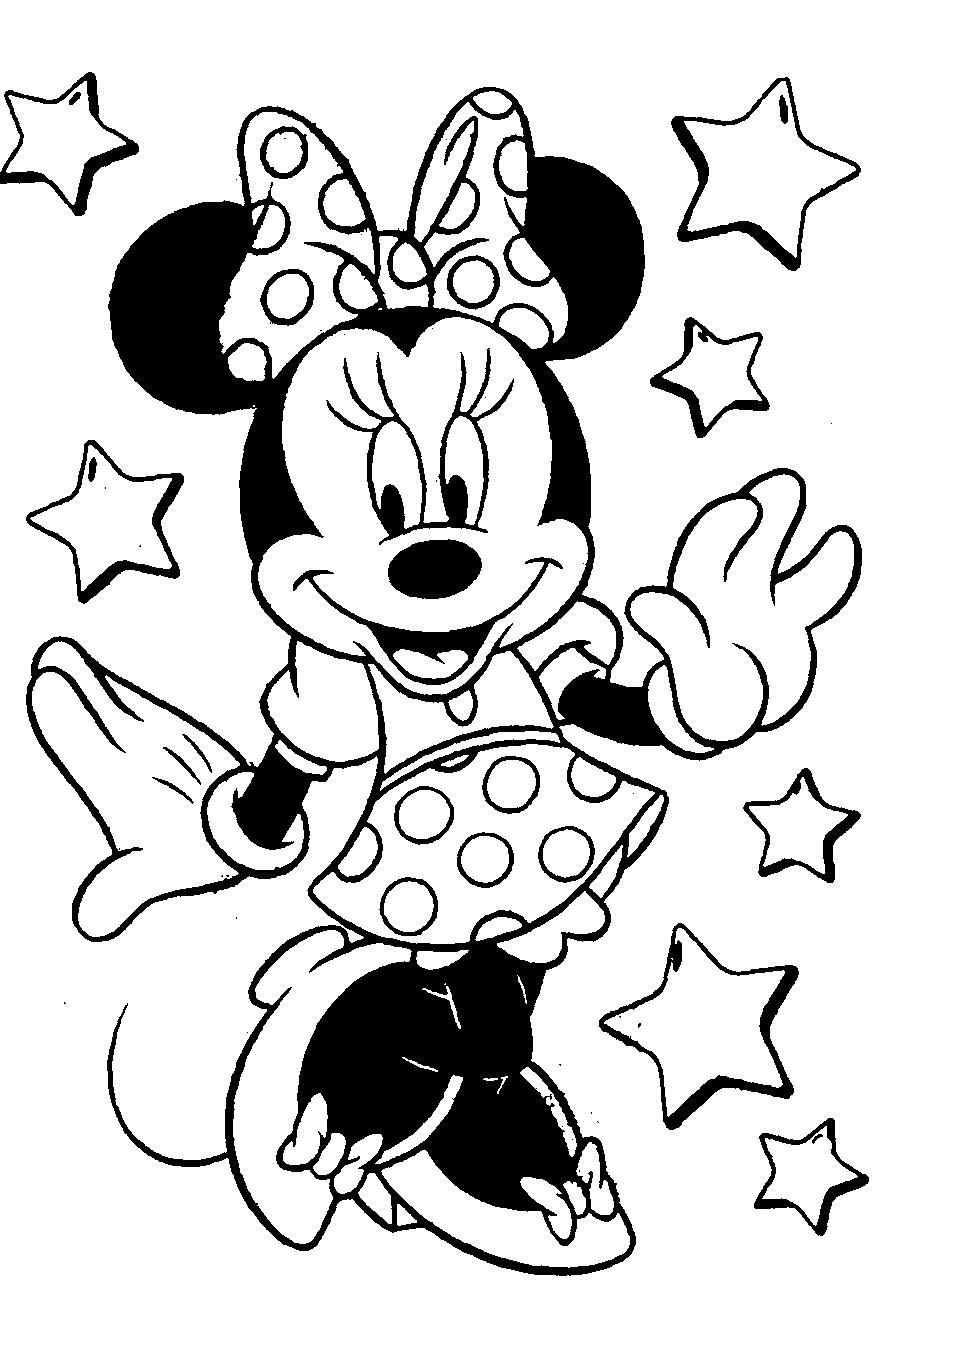 Coloring Pages Disney Free Disney Coloring Pages Mickey Mouse Coloring Pages Cartoon Coloring Pages